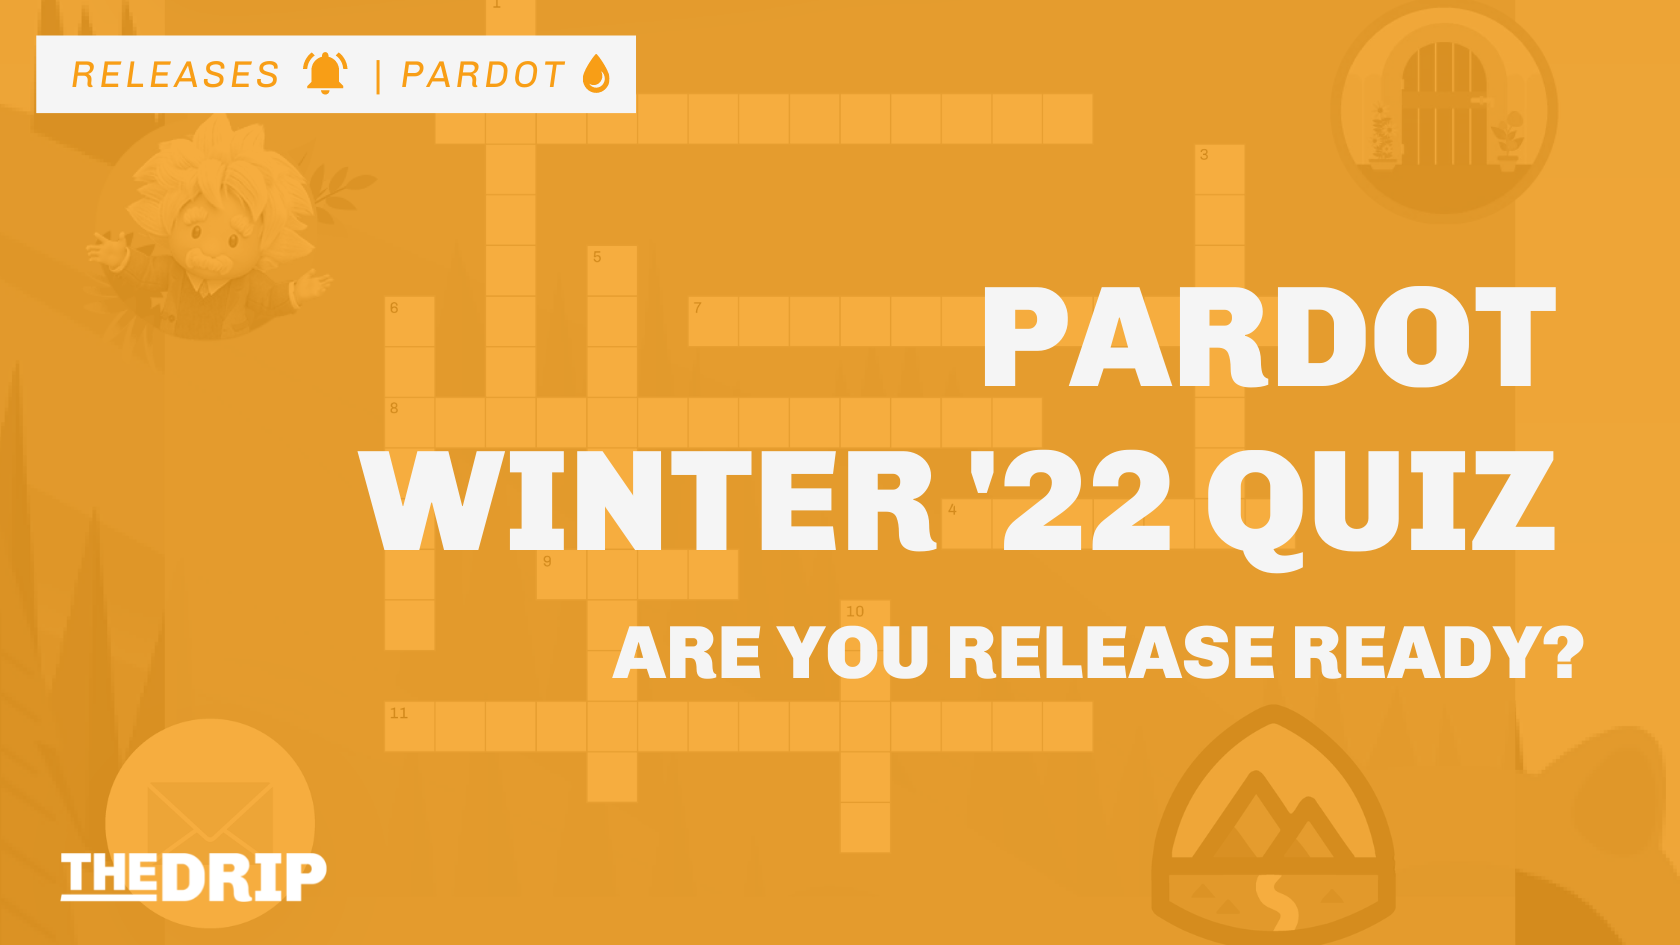 Pardot Winter '22 Quiz – Are You Release Ready?